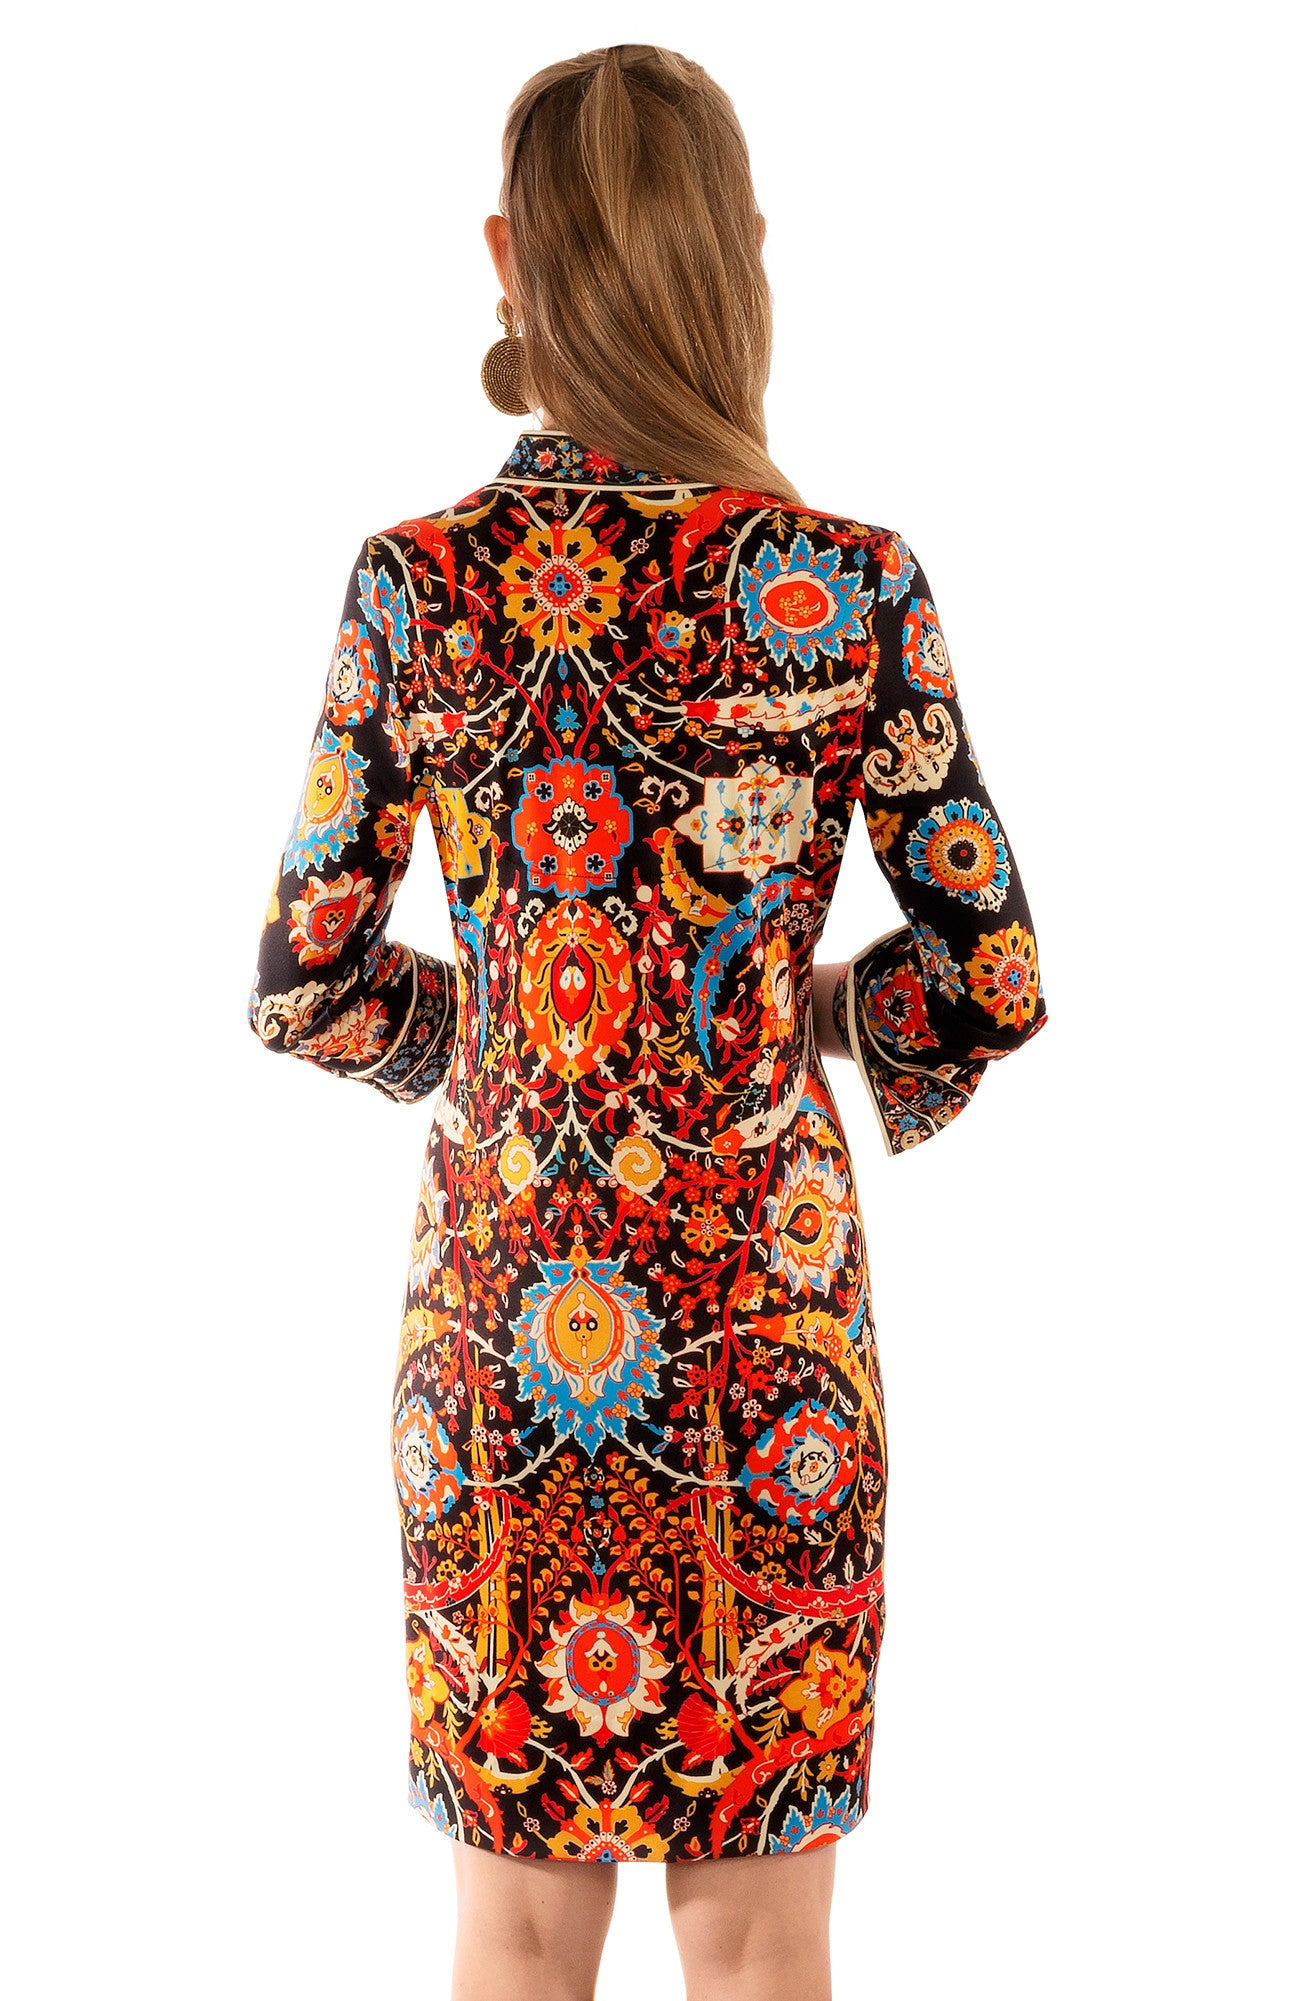 GRETCHEN SCOTT MANDARIN DRESS